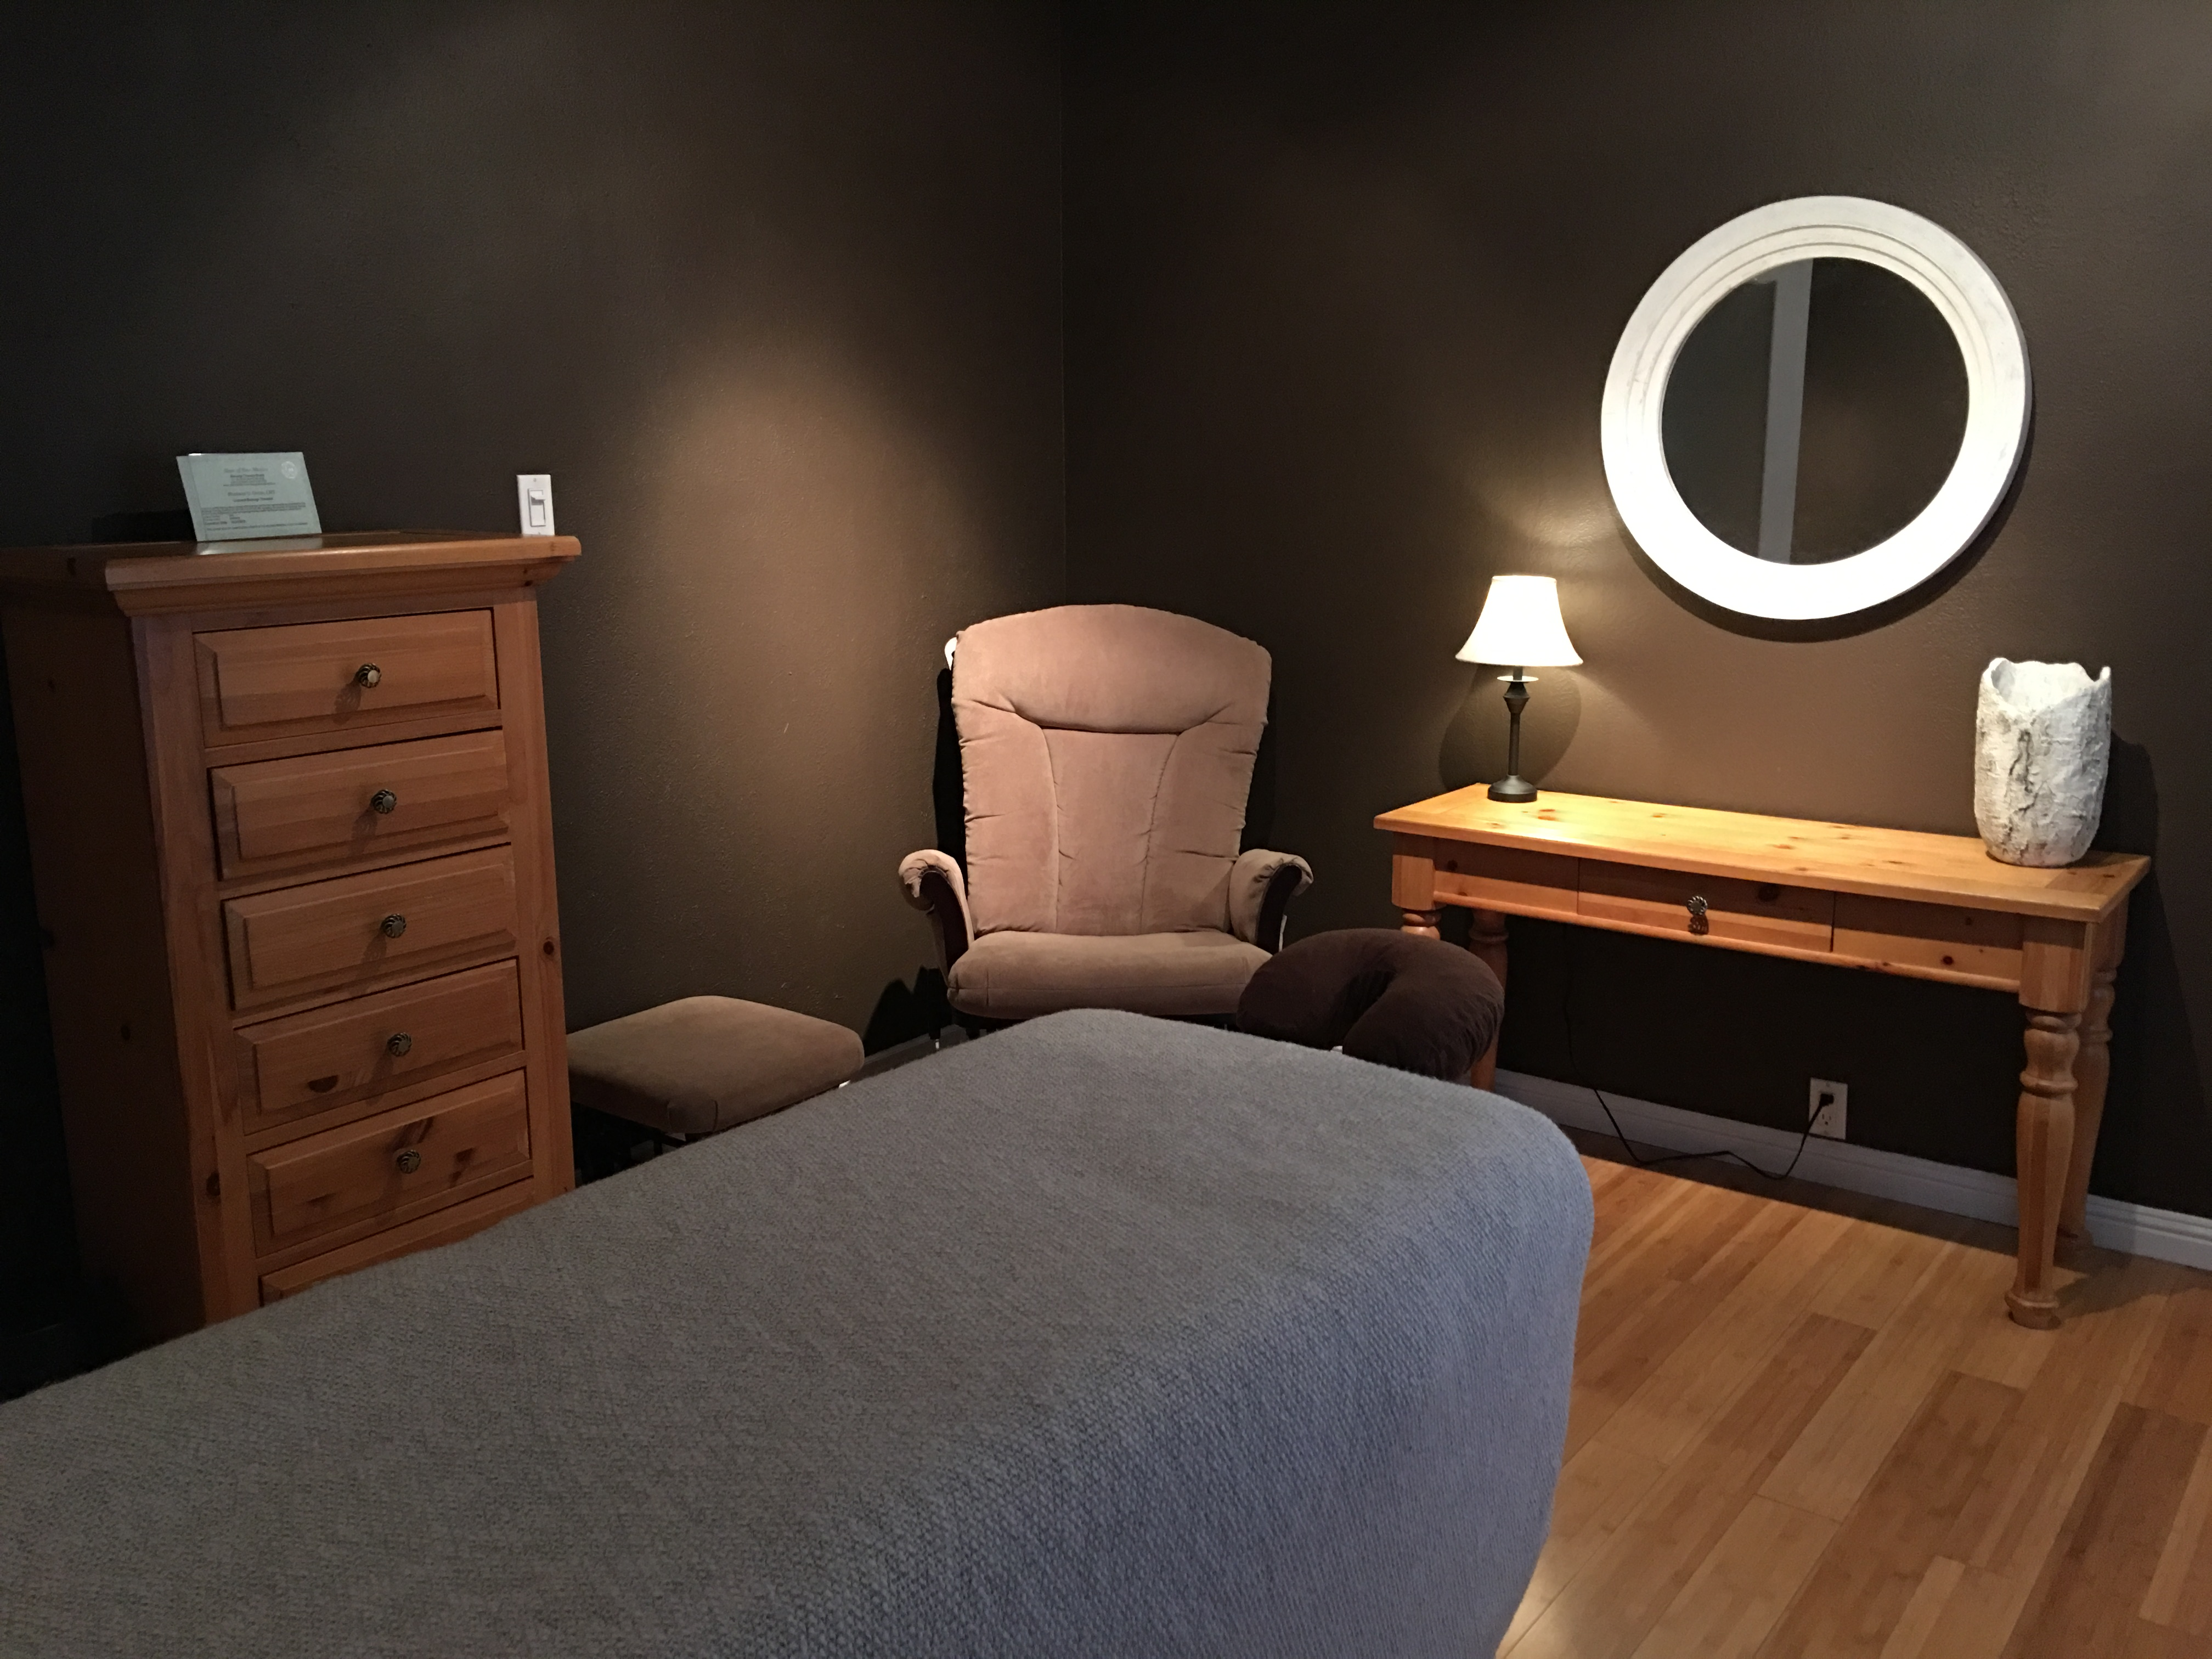 Pain & Swelling Solutions treatment room interior photo